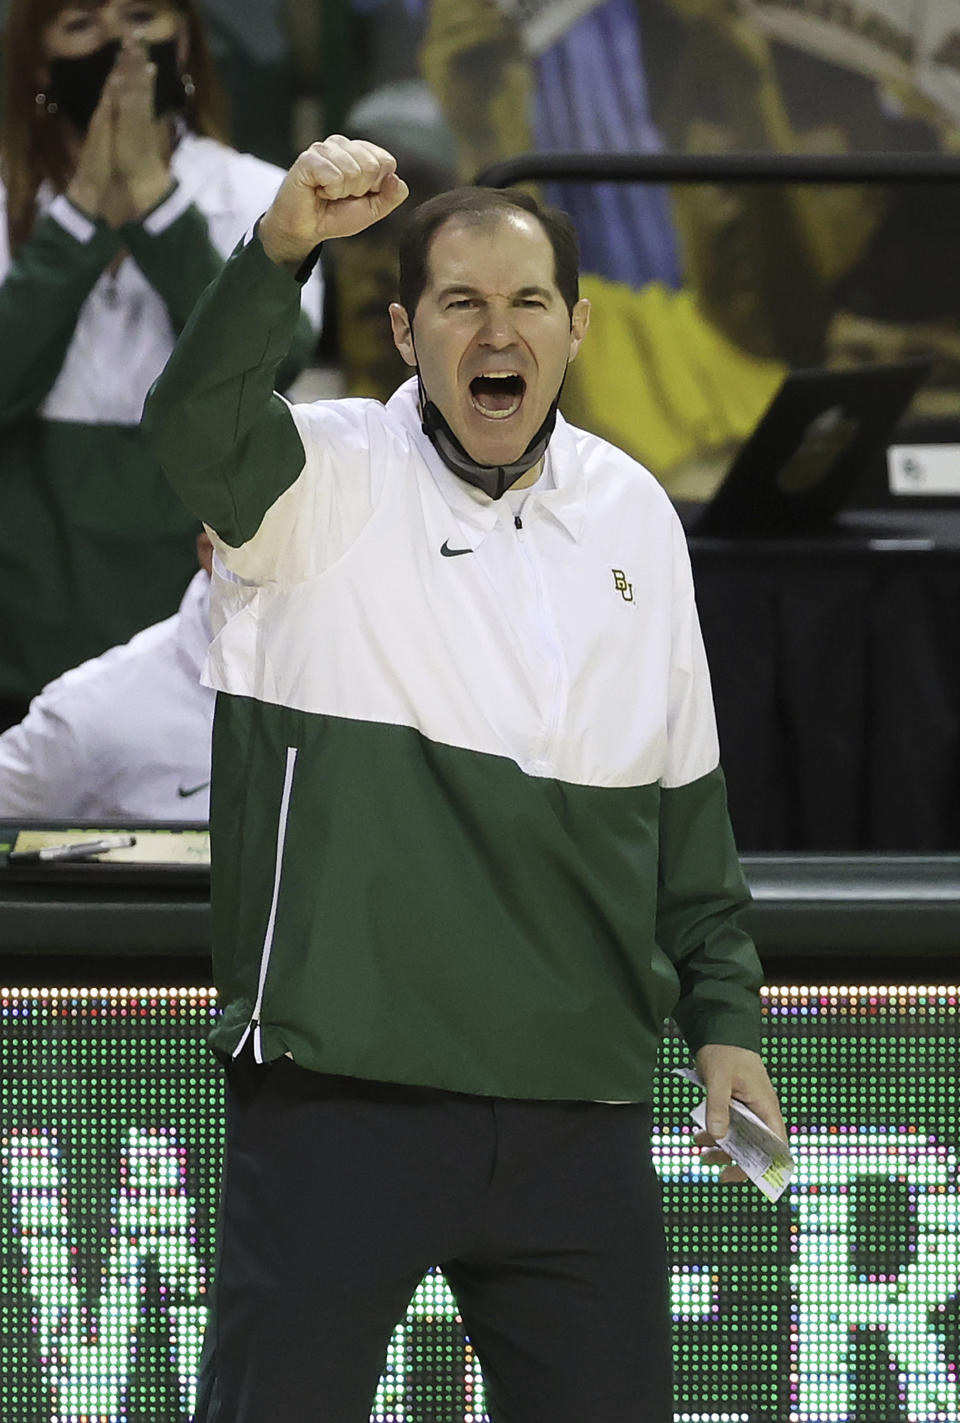 FILE - Baylor head coach Scott Drew reacts as his team scores in the second half of an NCAA college basketball game against Texas Tech in Waco, Texas, in this Sunday, March 7, 2021, file photo. Nobody will get a lump in their throat or start sizing up glass slippers for programs like these Alabama, Illinois, Baylor. They're not underdogs. They're hardly unknown. What they are is a group of new teams with well-recognized names in the NCAA Tournament, and they're hoping to keep making life hard on the programs that have long had a stranglehold on March.(AP Photo/Jerry Larson, File)